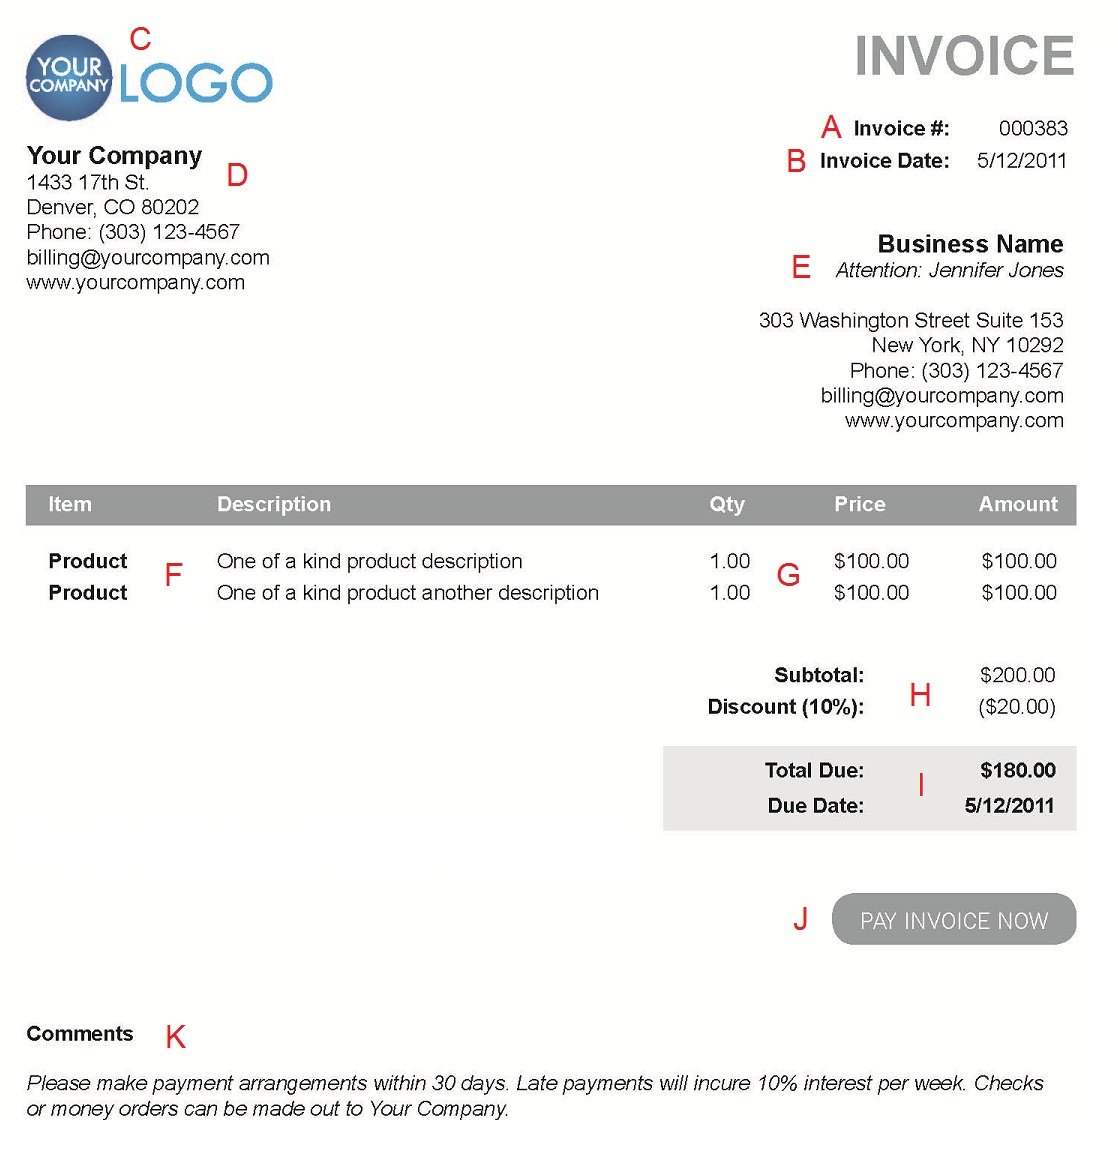 Ultrablogus  Terrific The  Different Sections Of An Electronic Payment Invoice With Likable A  With Delightful Make Your Own Invoice Online Free Also Invoice Manager Software In Addition Invoice What Is It And Invoice For Web Design As Well As Invoice Program Mac Additionally Toyota Invoice Price Holdback From Paysimplecom With Ultrablogus  Likable The  Different Sections Of An Electronic Payment Invoice With Delightful A  And Terrific Make Your Own Invoice Online Free Also Invoice Manager Software In Addition Invoice What Is It From Paysimplecom